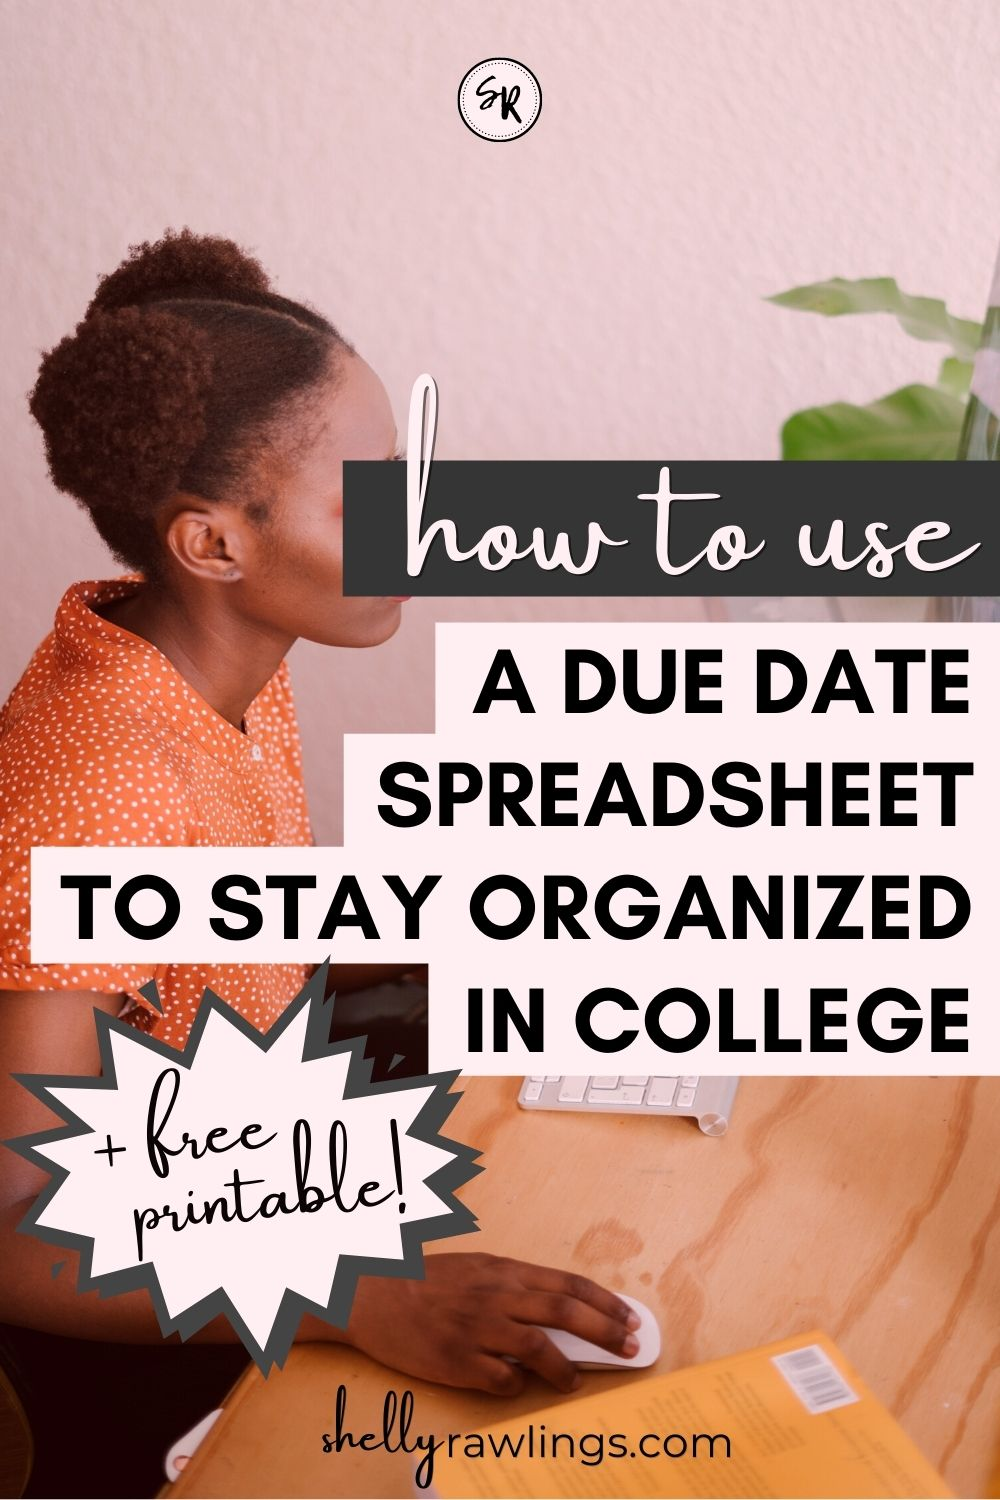 Gray and pink text appears over an image of a woman working at a computer. Image reads: How to Use a Due Date Spreadsheet to Stay Organized in College, plus free printable. Read on Shelly Rawlings dot com.